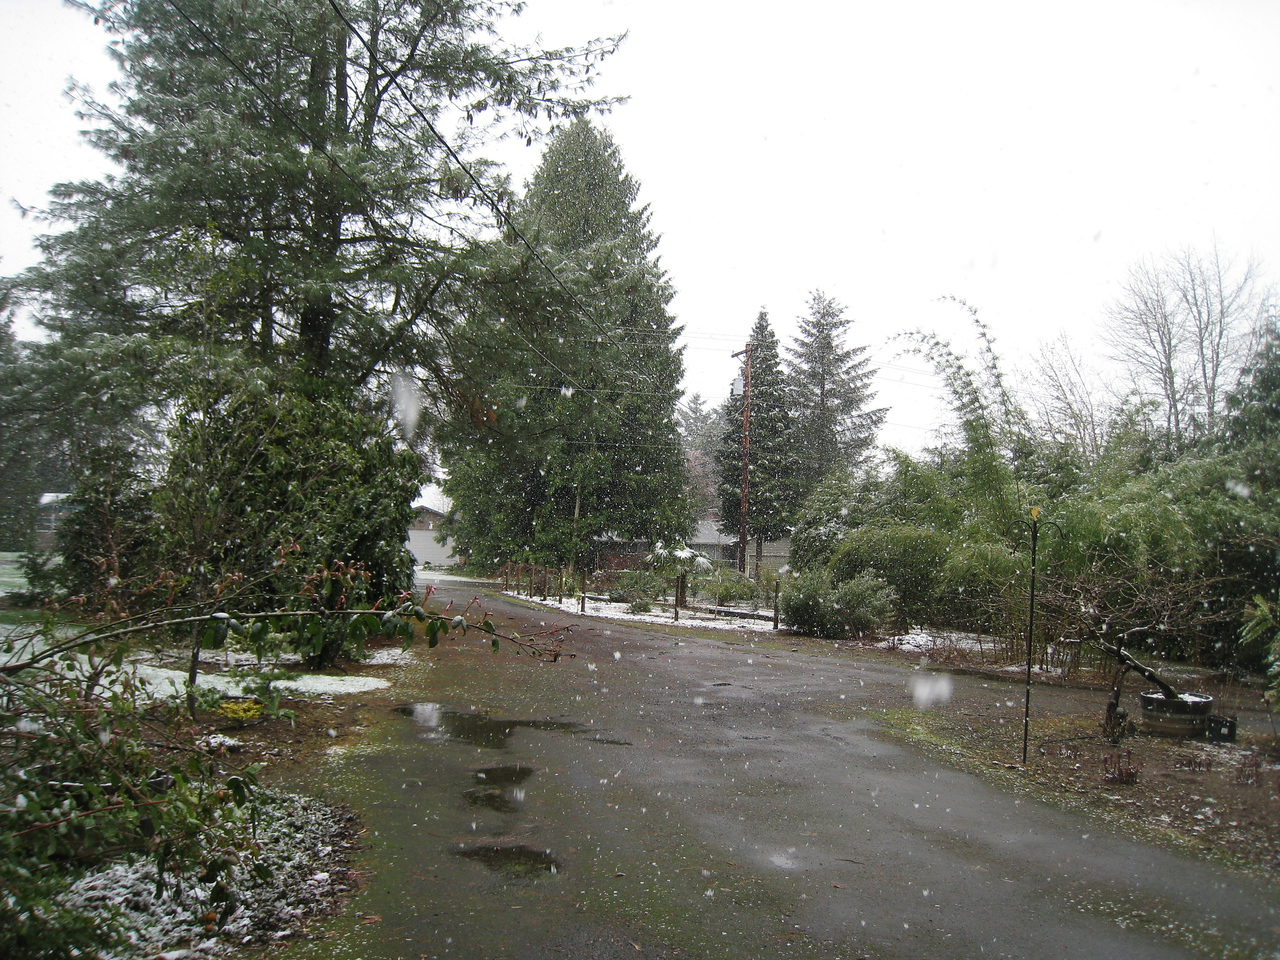 April 5th, another lovely Spring day in Oregon!